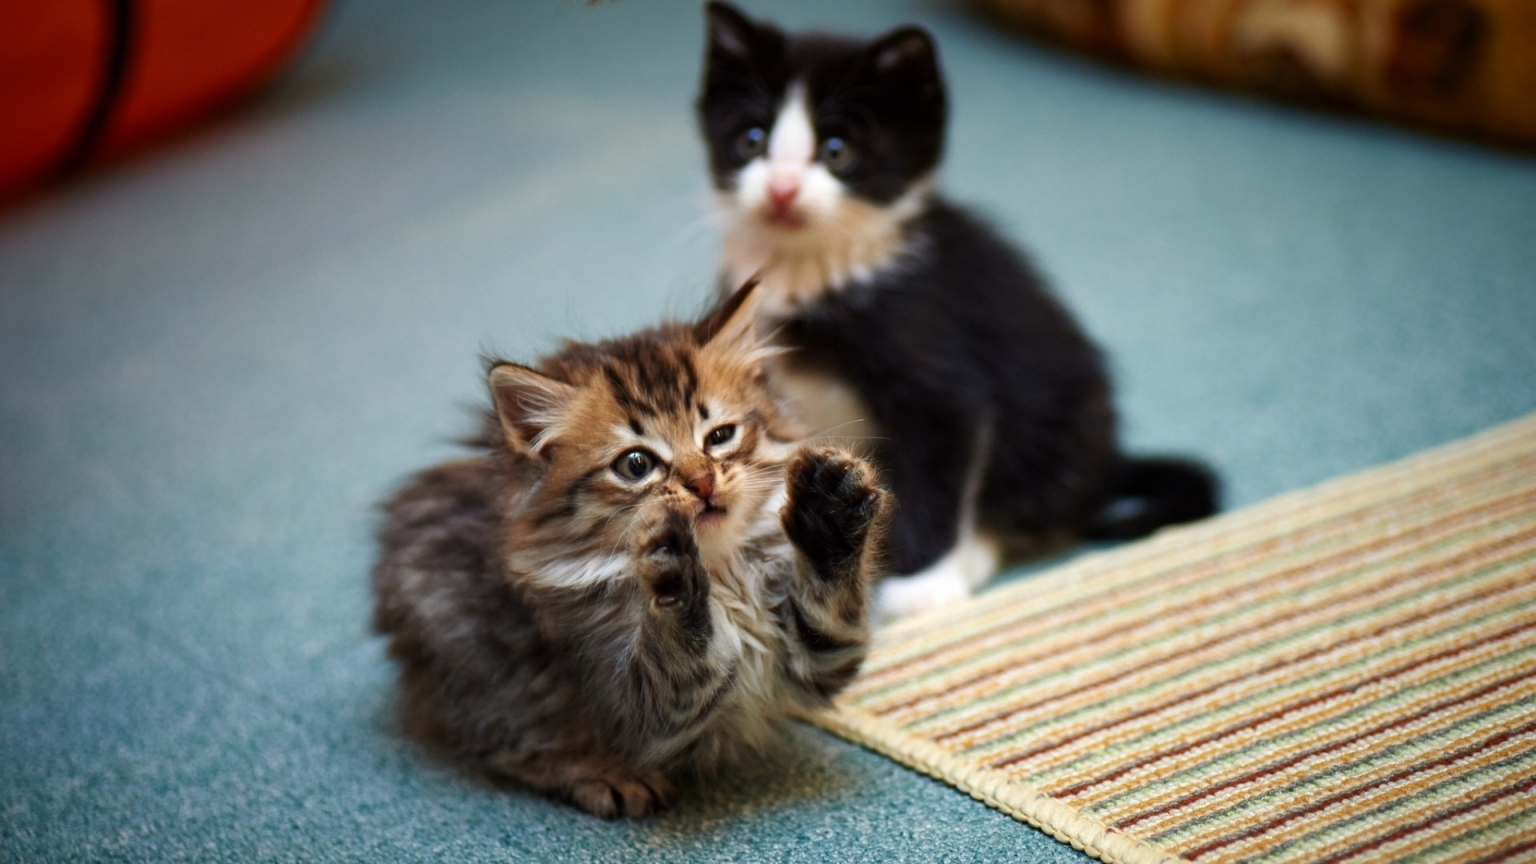 2 Cute Kitties for 1536 x 864 HDTV resolution